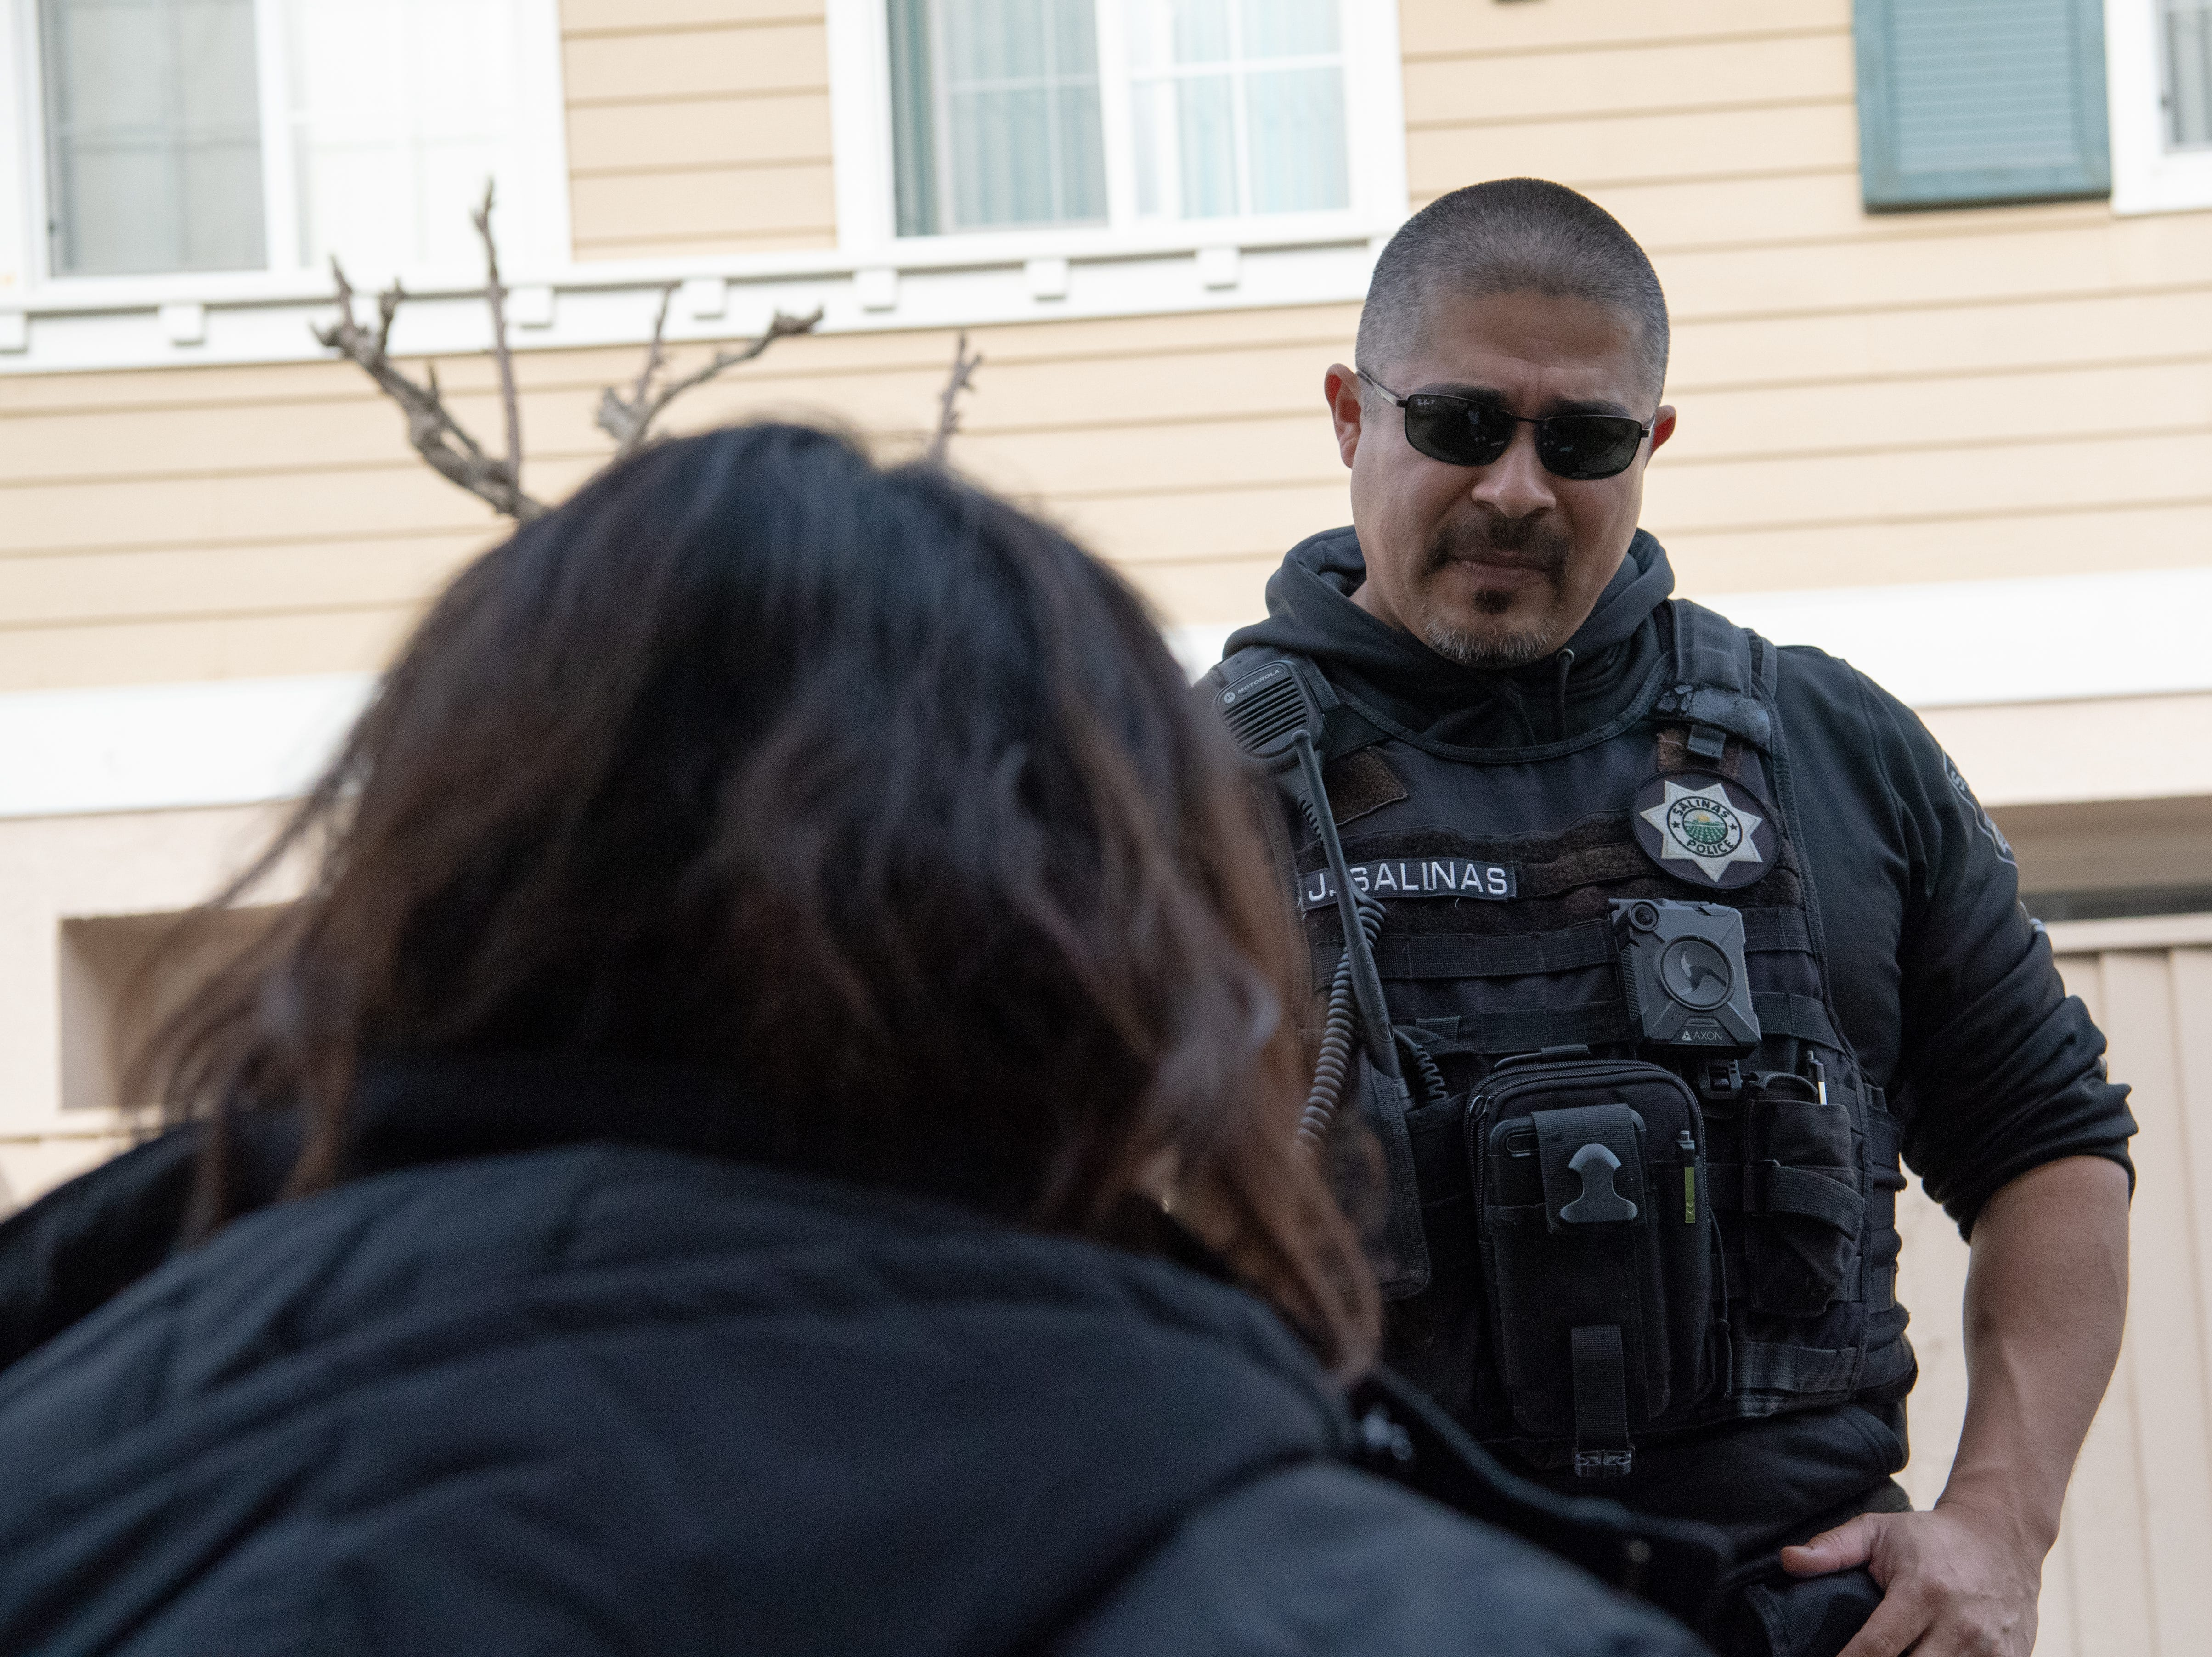 """A large-scale, four-month-long gang enforcement operation named """"Operation Triple Beam"""" concluded Feb. 15 resulting in arrest of 197 fugitives, 94 of whom were gang members or associates. The U.S. Marshals Pacific Southwest Regional Fugitive Task Force led operation, involved multiple federal, state and local law enforcement agencies concentrating their efforts and focus on known street gangs in Monterey County, particularly within the City of Salinas. During Operation Triple Beam (OTB), which was conducted from October 2018 to February 2019, Salinas Police noted significant reduction in violent crime reports in comparison to the prior year.  Specifically noted were an 87.5 percent decrease in homicide incidents, a 46.6 percent decrease in drive-by-shootings, a 31.7 percent decrease in shootings overall, and a 66.6 percent decrease in armed robberies. Since 2010, the U.S. Marshals Service has led more than 60 counter-gang operations which have yielded over 8,000 arrests and the seizure of more than 1,800 illegal firearms."""